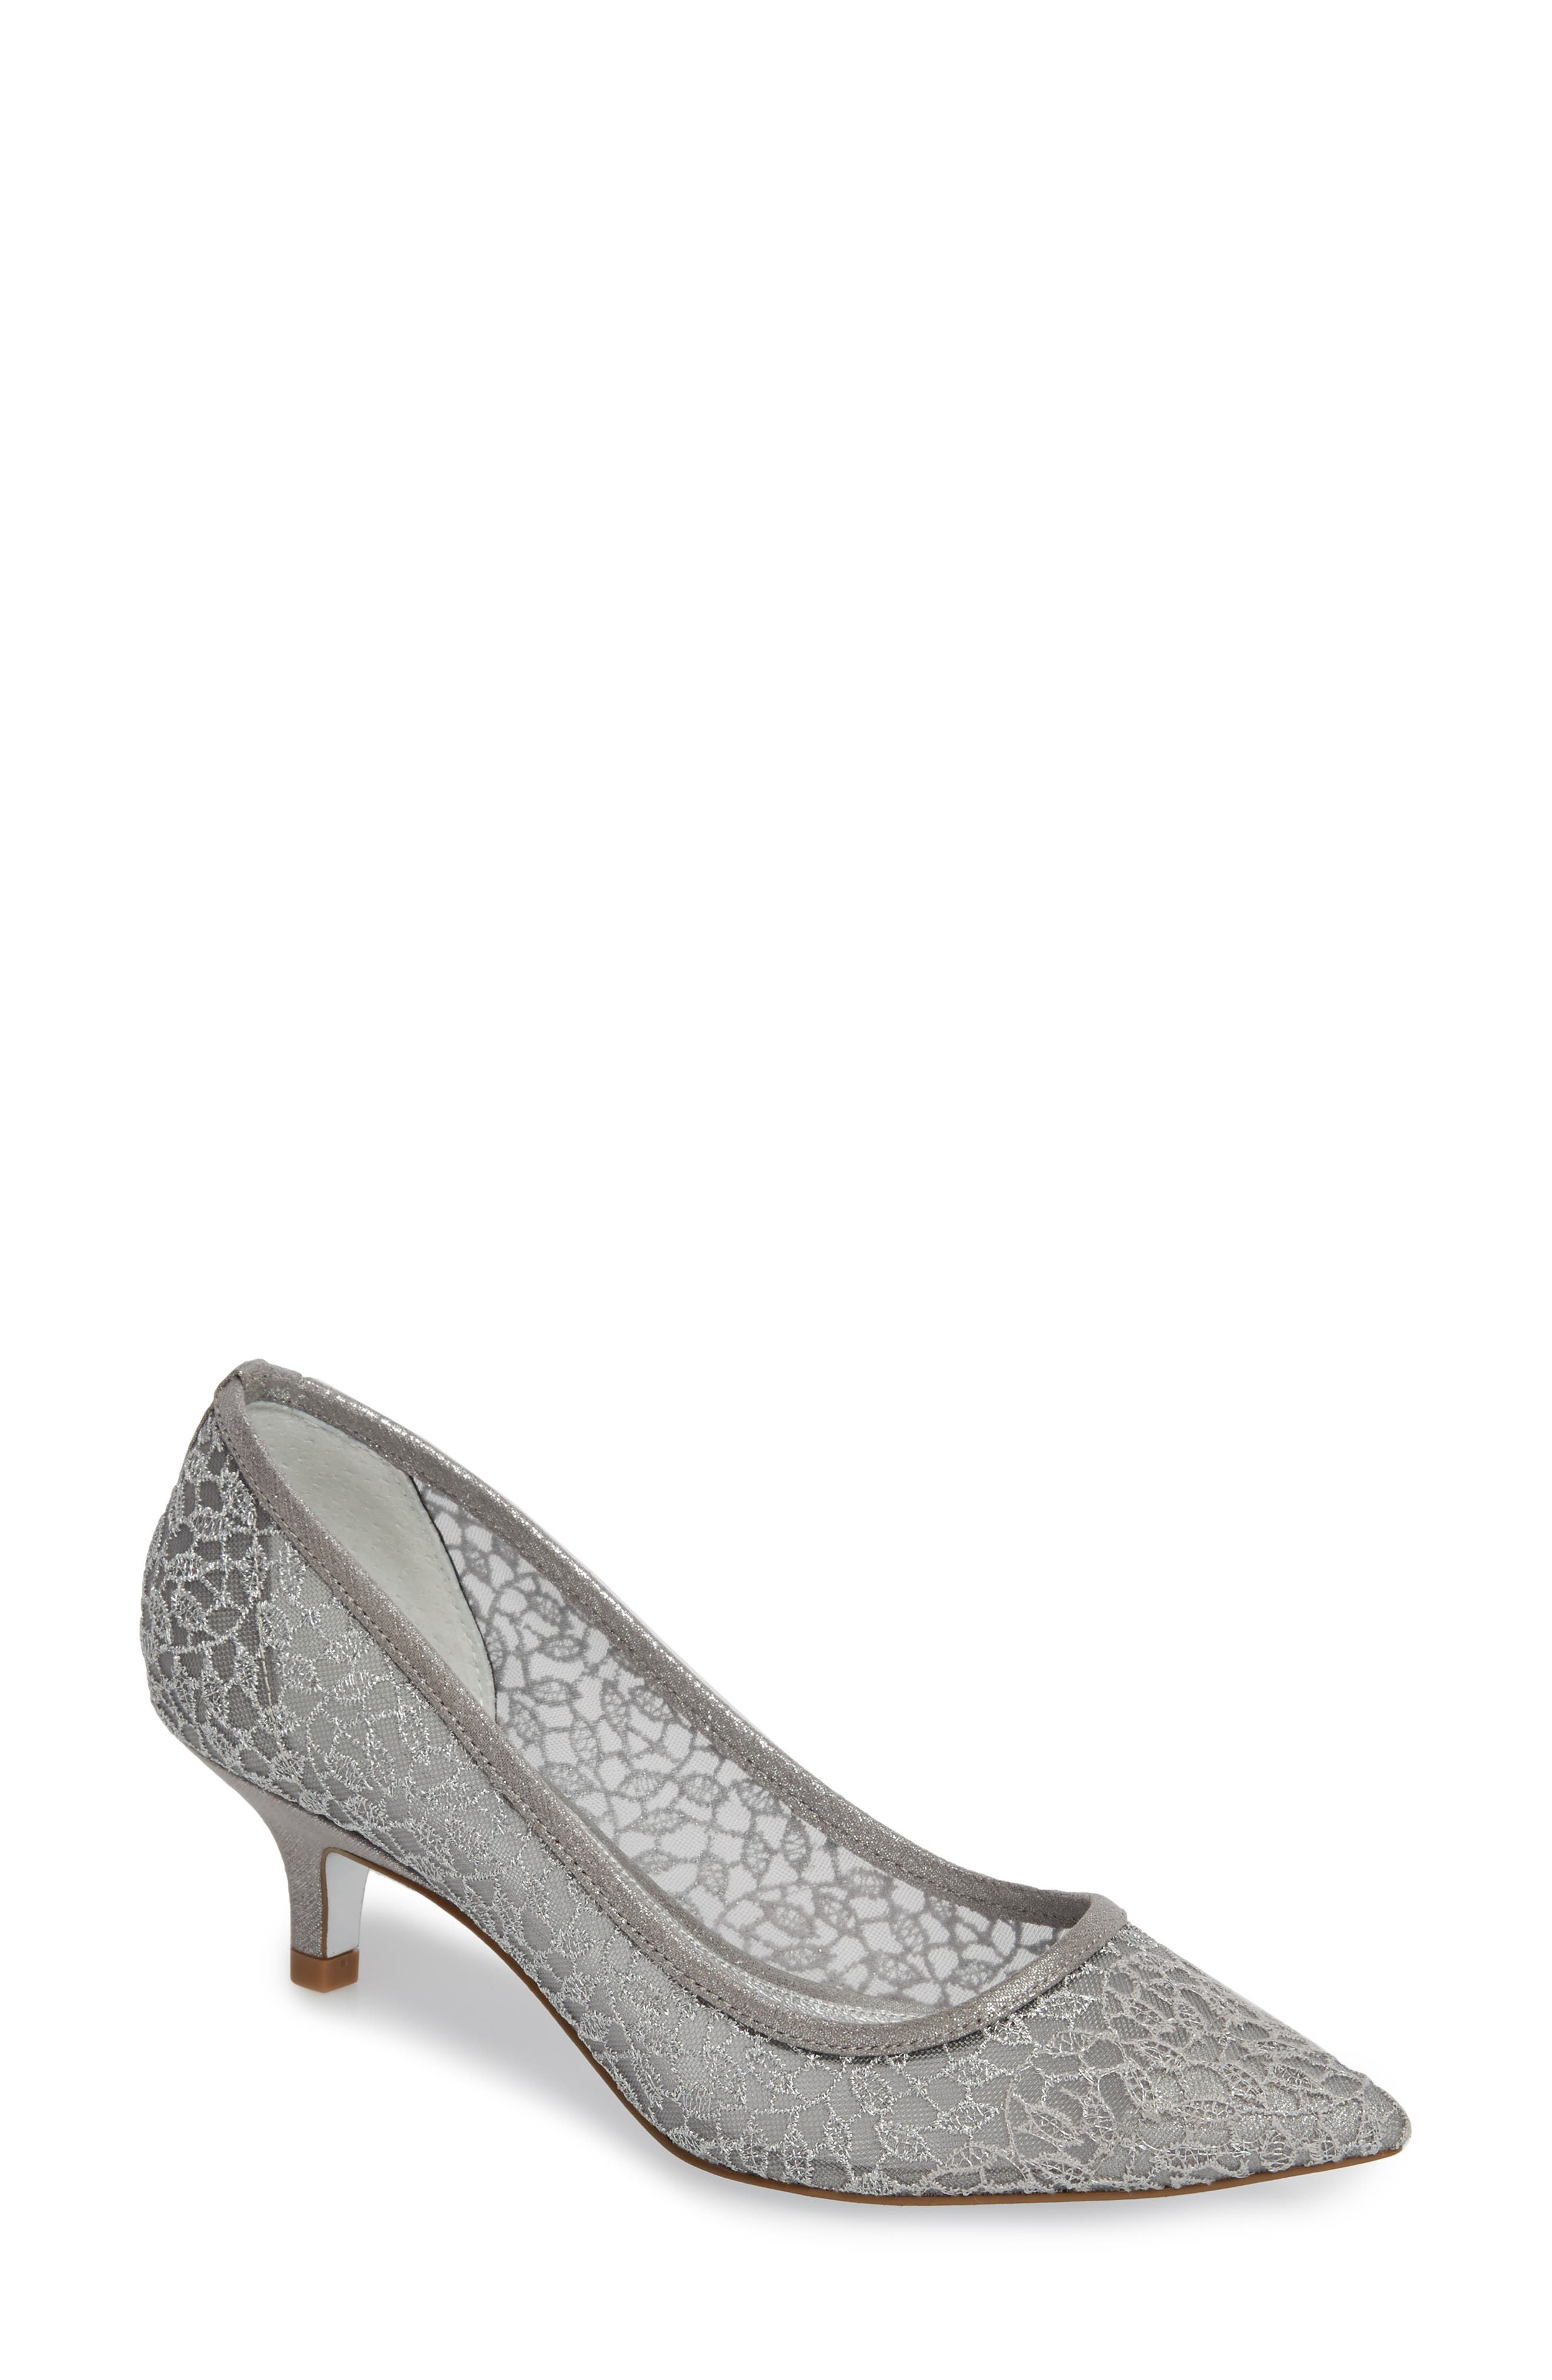 e6209b49a97 Women s Metallic Heels